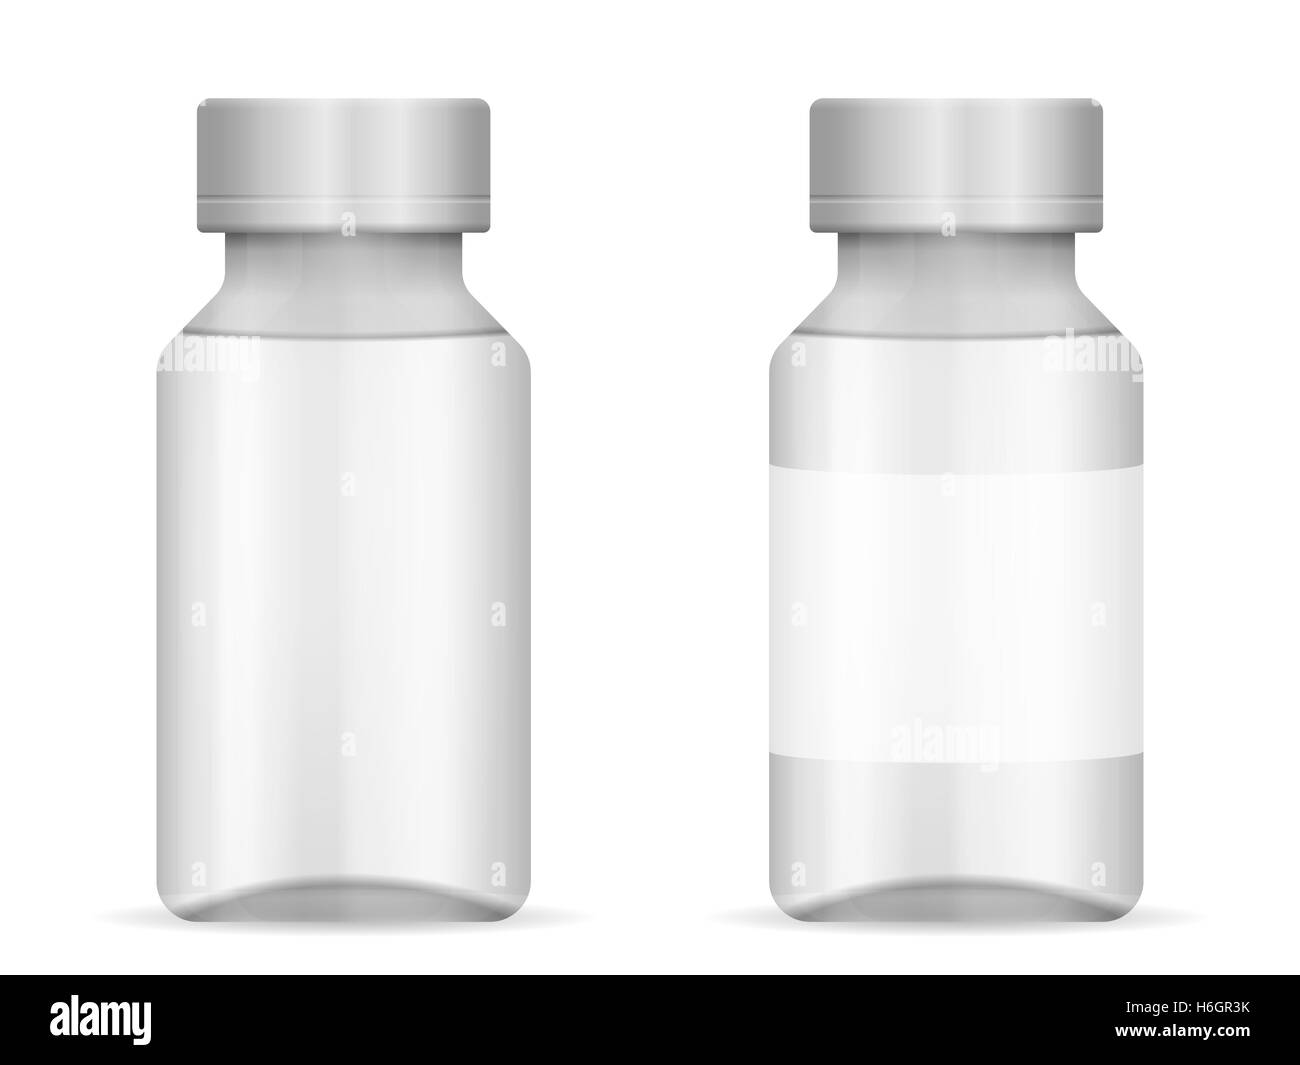 Glass vial on a white background. - Stock Image